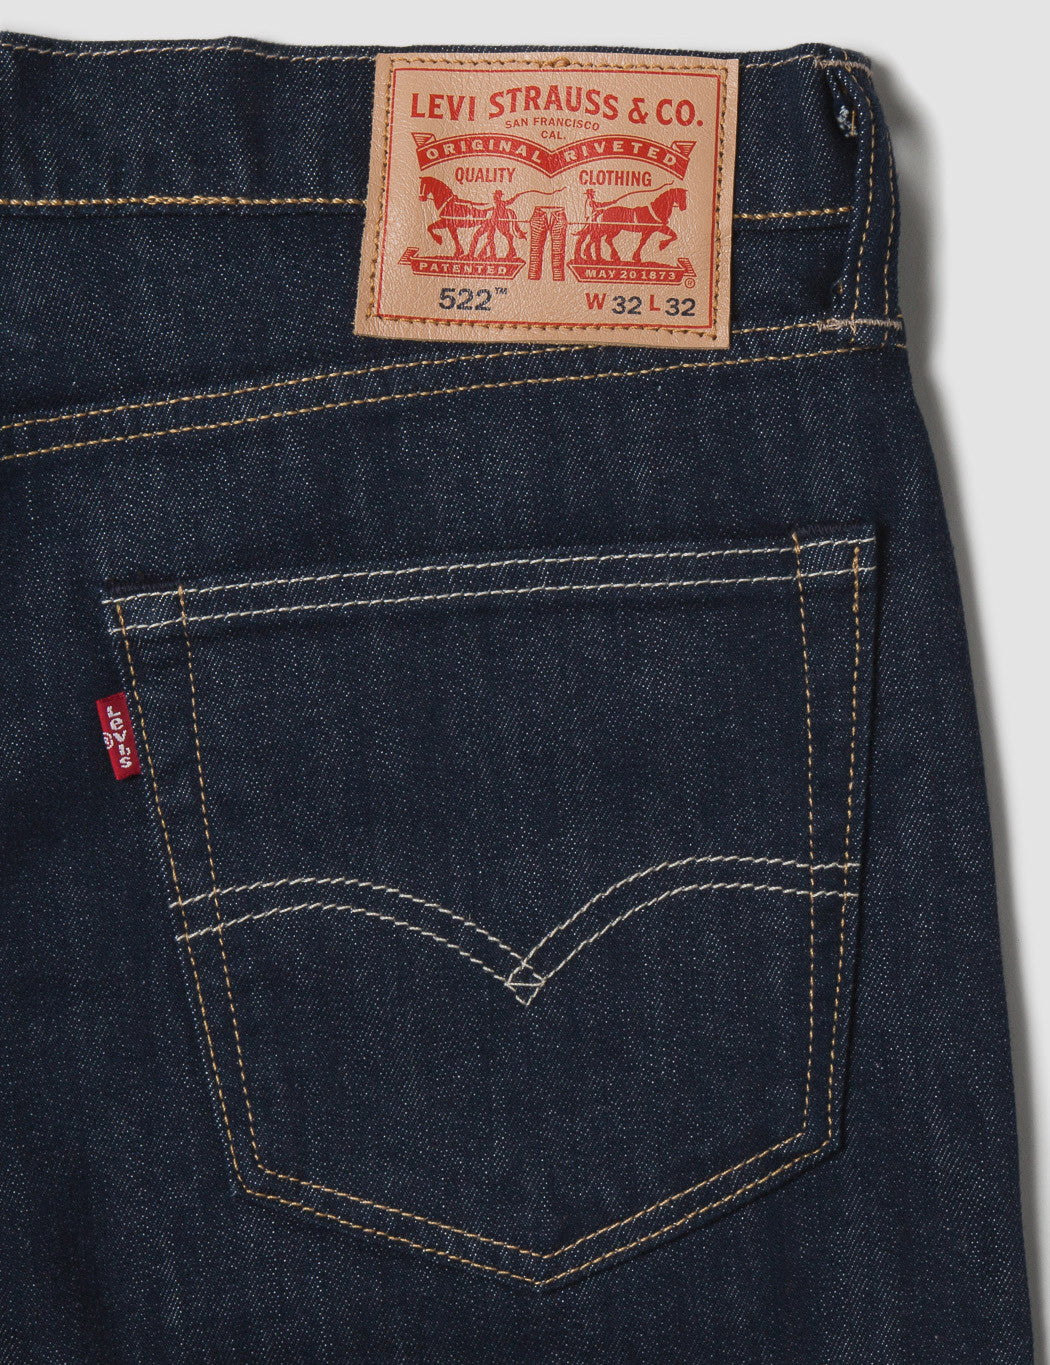 Levis 522 Slim Taper Jeans - Big Bend